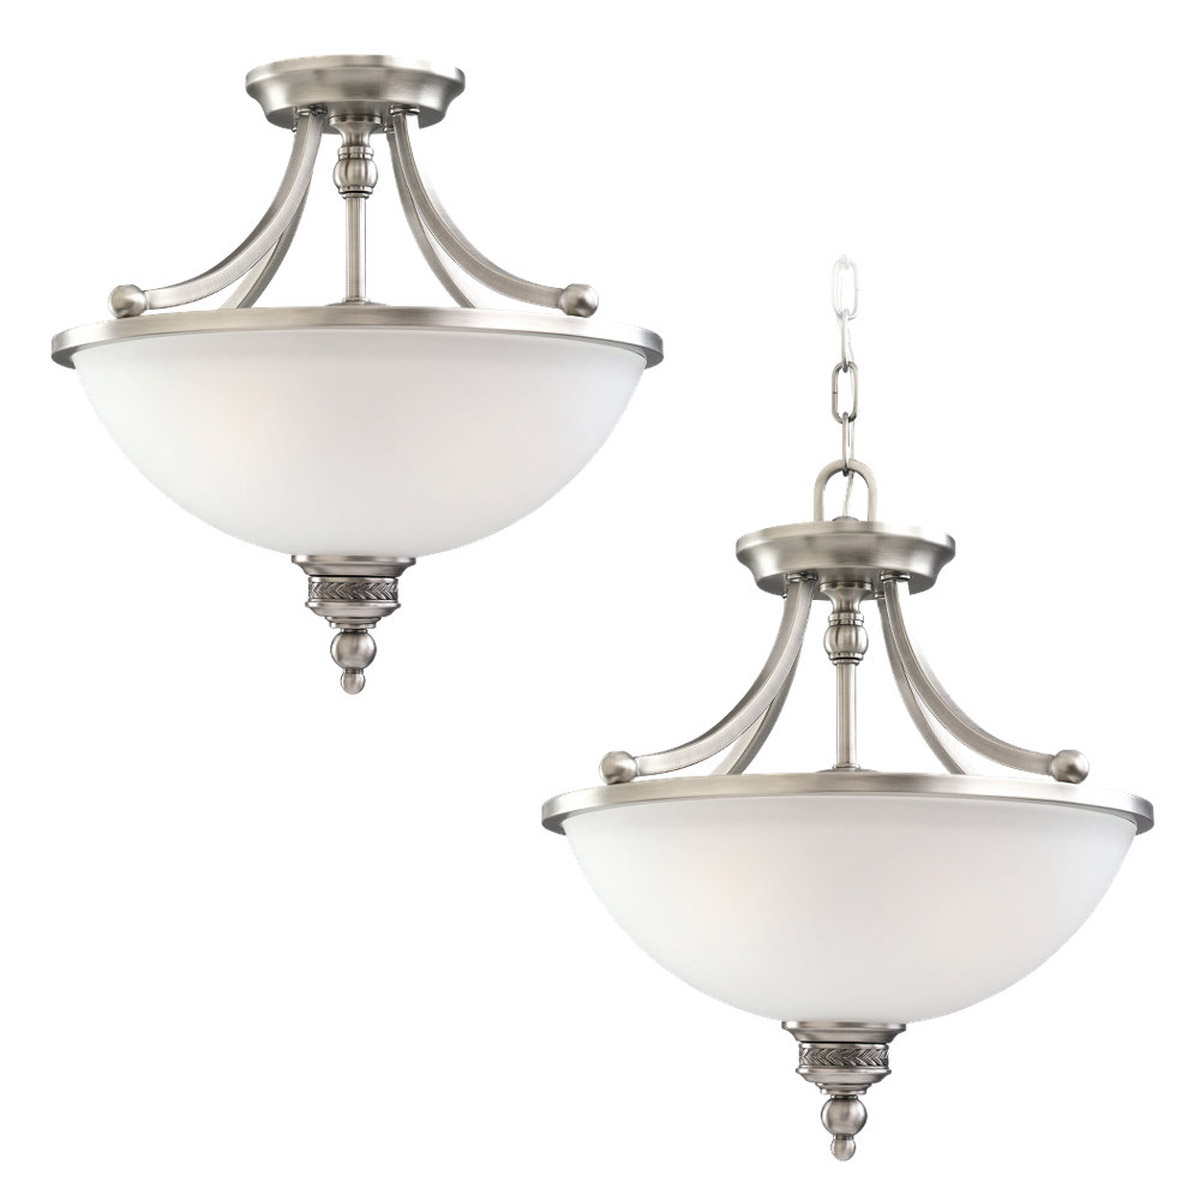 Sea Gull Lighting Laurel Leaf 2 Light Semi-Flush Mount in Antique Brushed Nickel 77350-965